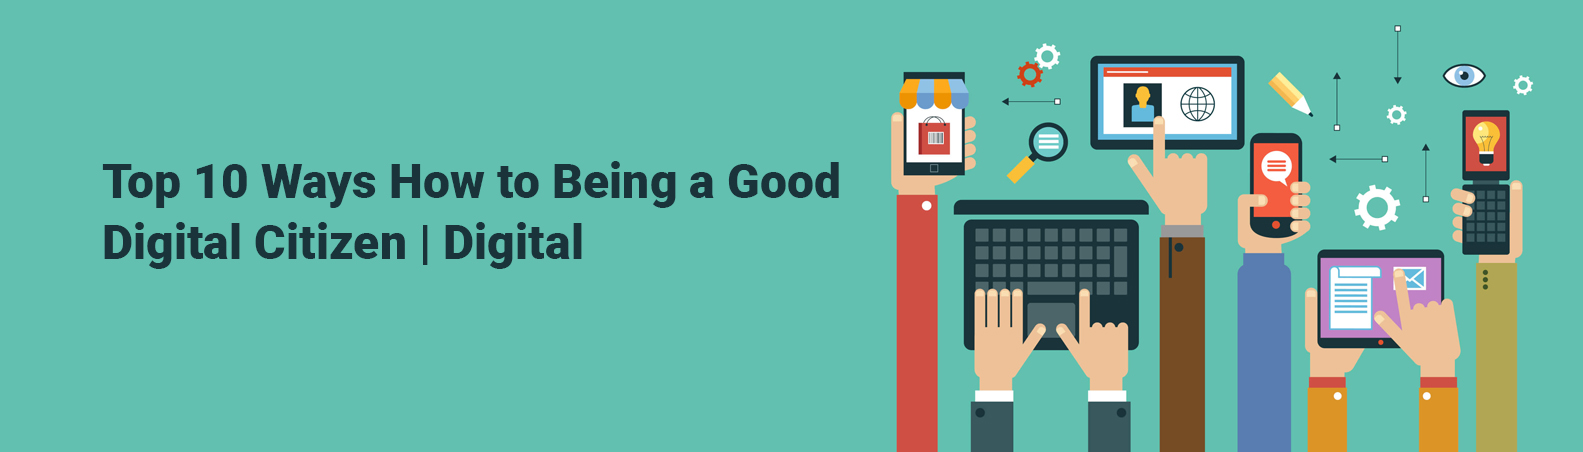 Top 10 Ways How to Being a Good Digital Citizen | Digital